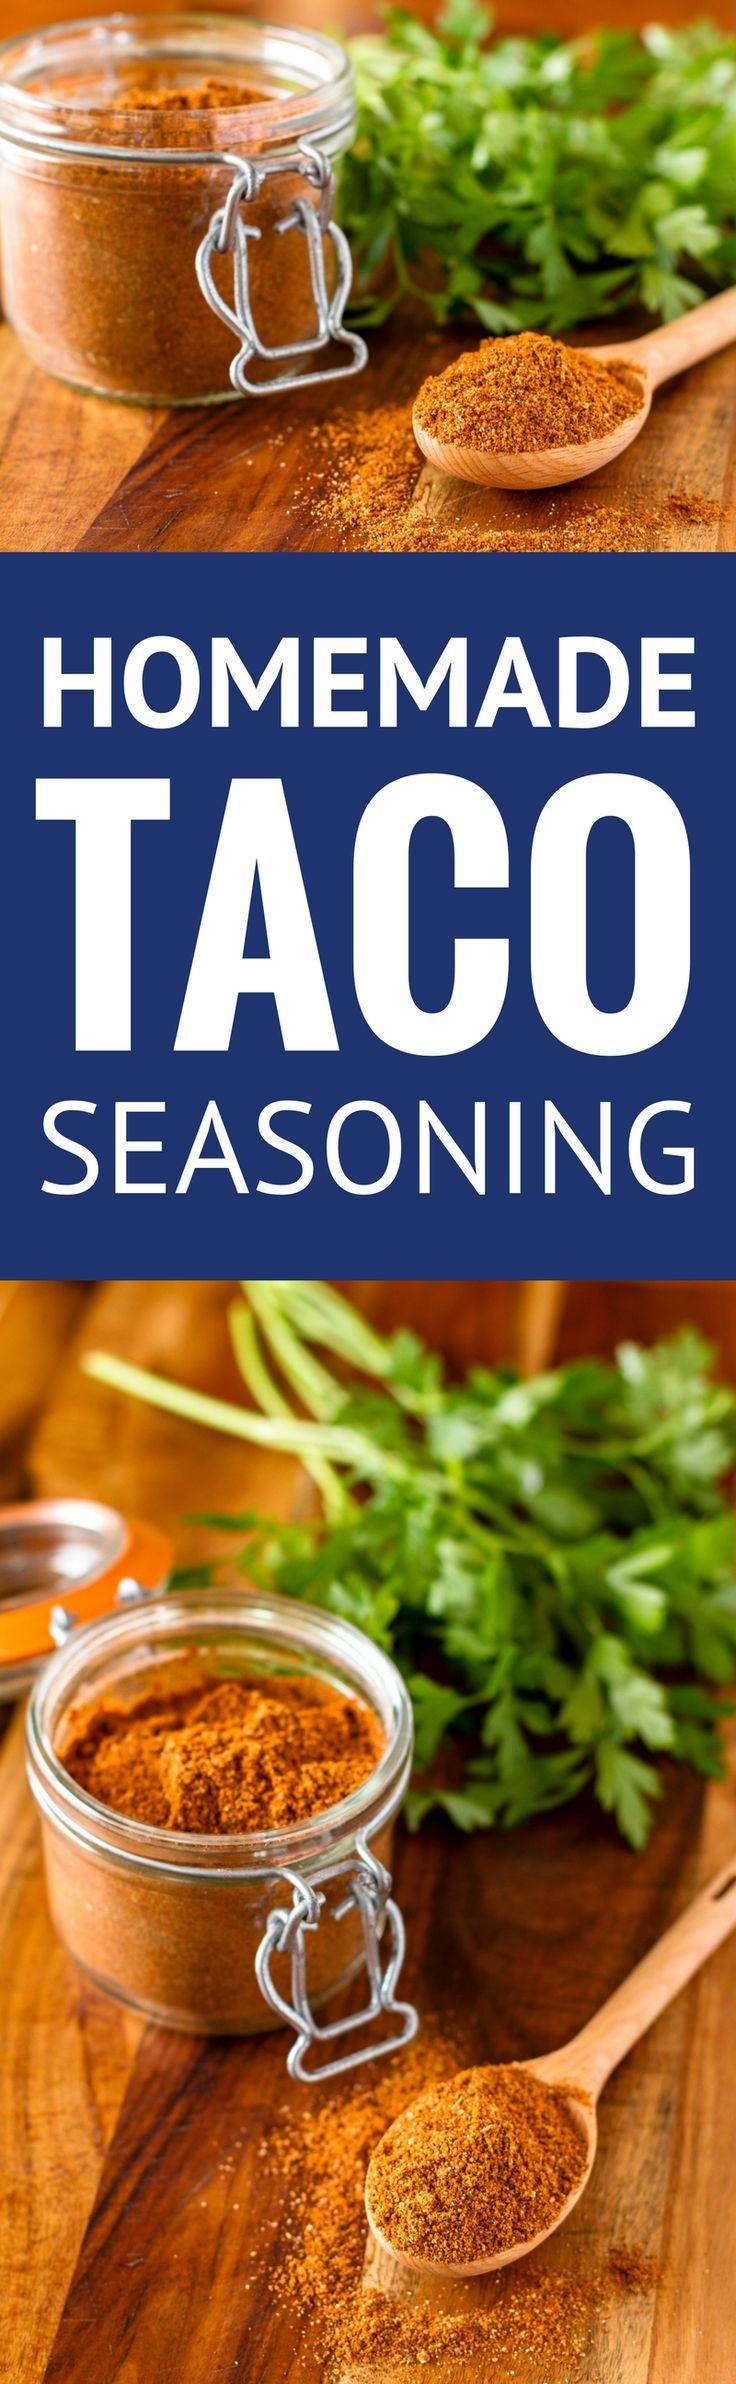 Homemade Taco Seasoning Mix -- make your own all purpose taco meat seasoning and you'll never go back to the icky processed store bought version again... Easy, less expensive, preservative-free and Whole30 approved! | taco seasoning recipe | diy taco seasoning | whole30 taco seasoning | beef taco seasoning | chicken taco seasoning | find the recipe on unsophisticook.com #whole30recipes #tacotuesday #tacoseasoning #homemade